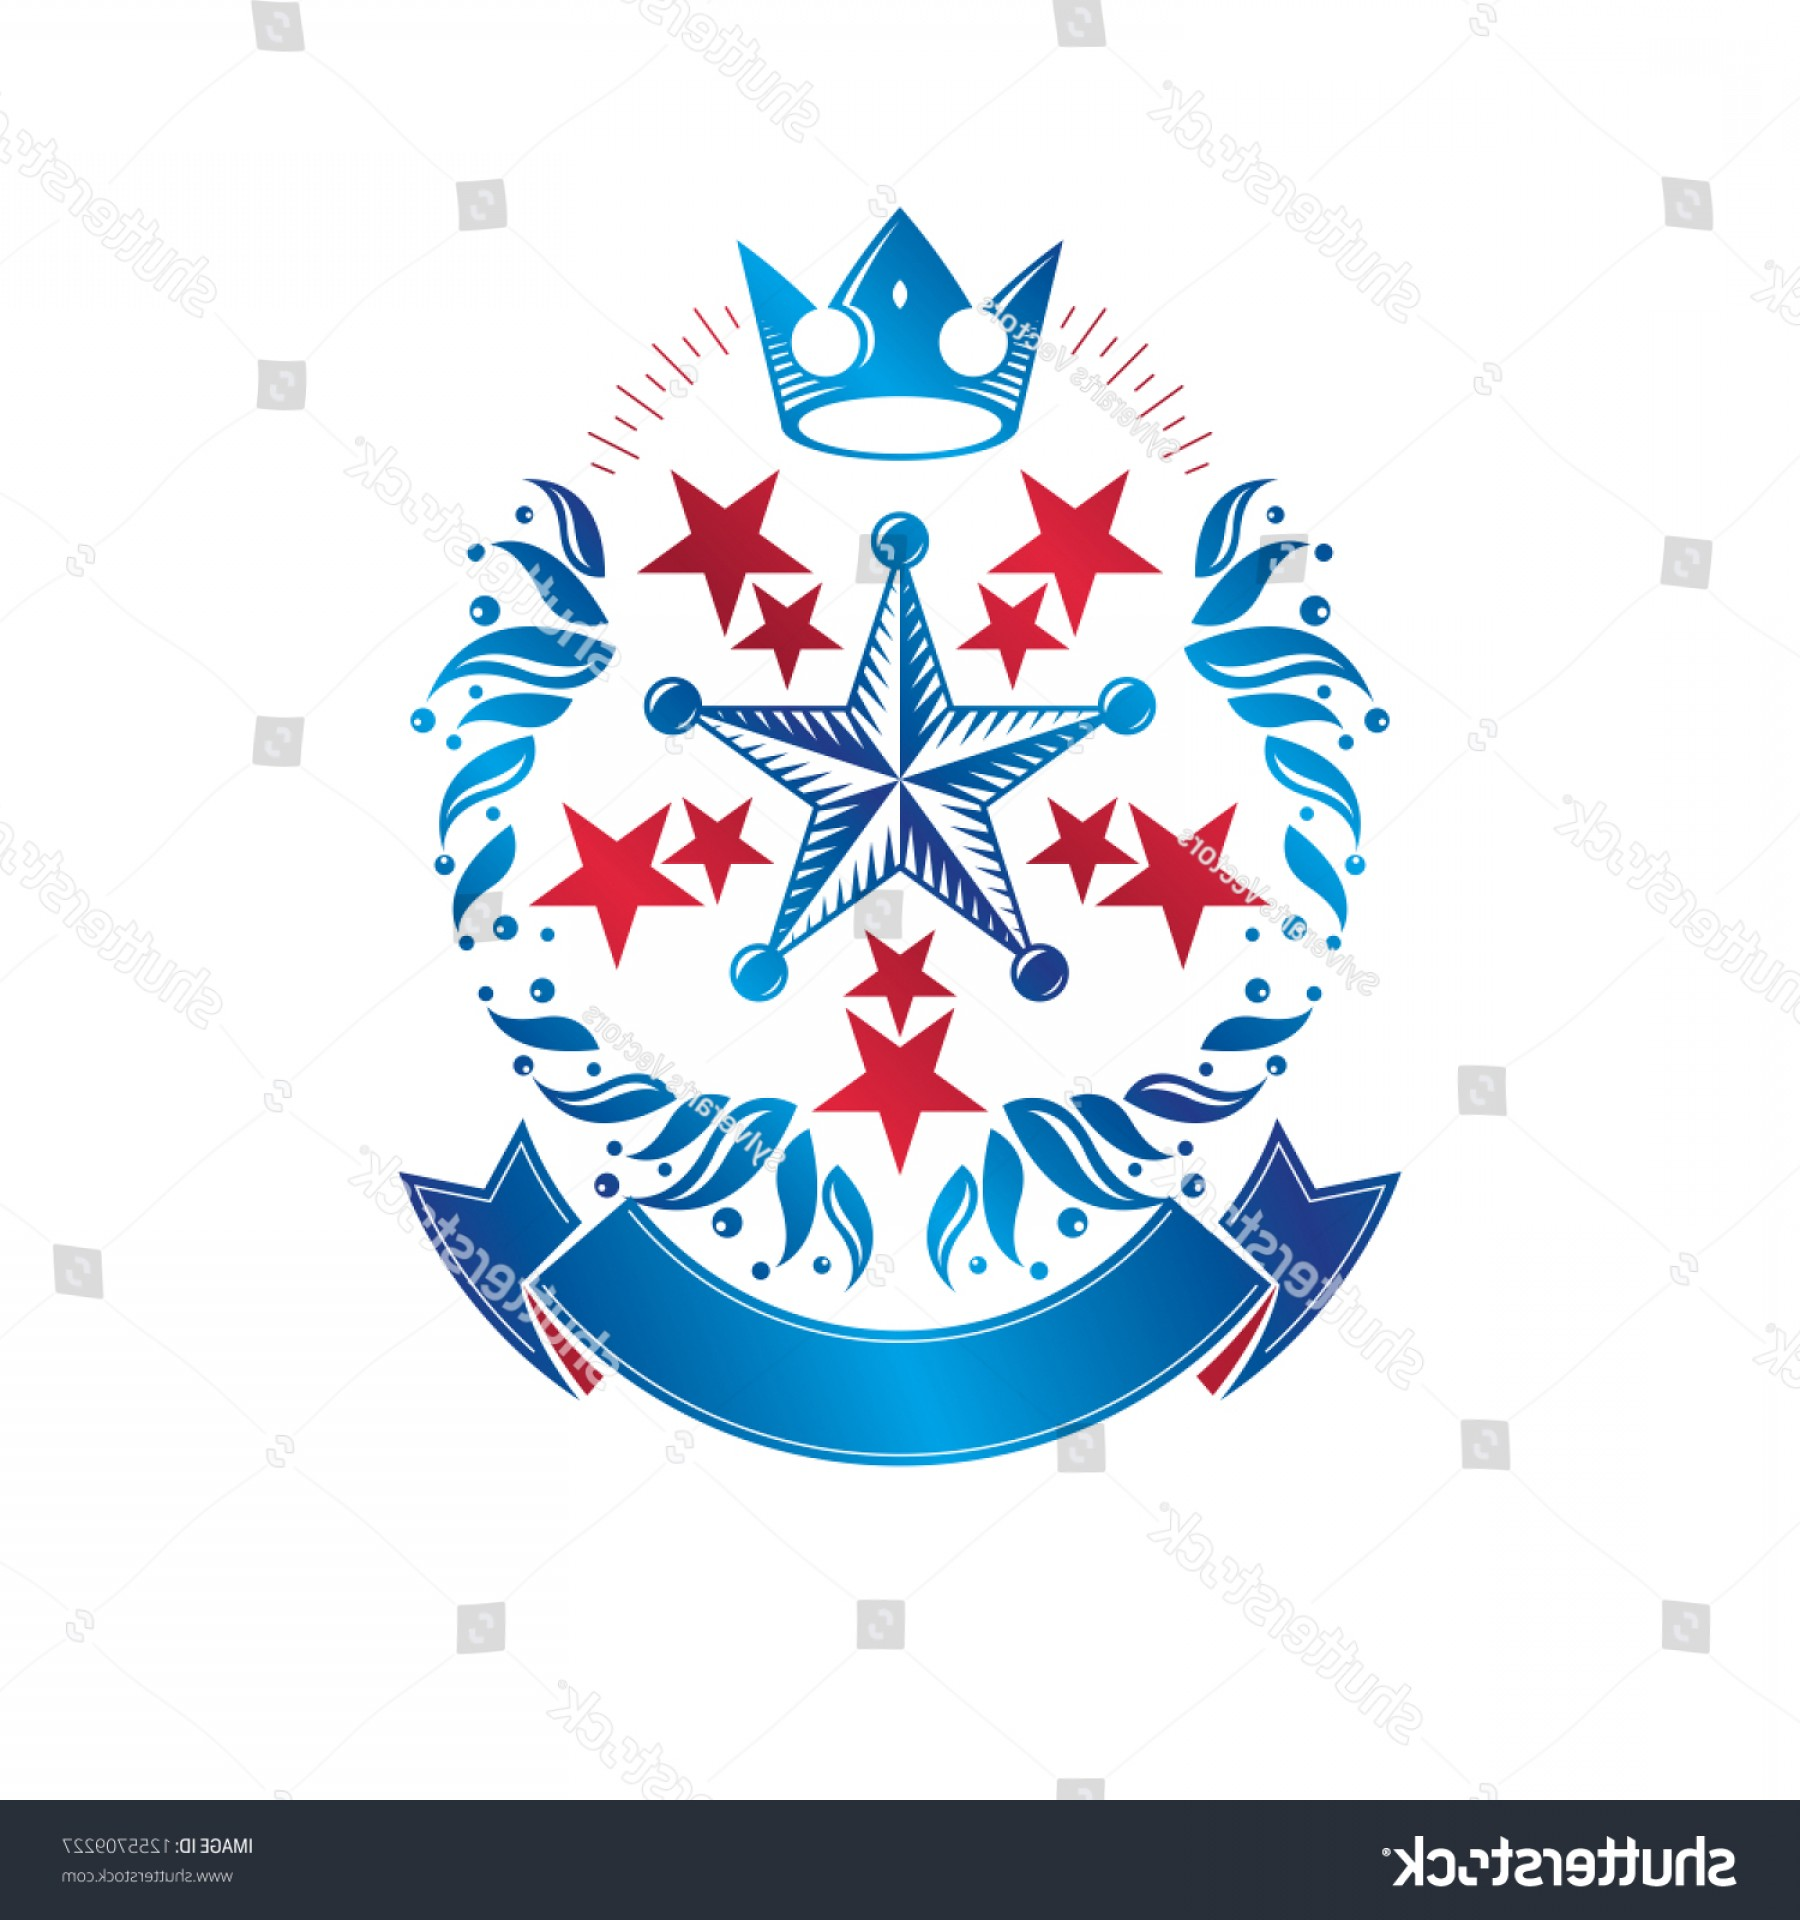 Heraldic Vector Ornaments: Ancient Star Emblem Decorated Imperial Crown